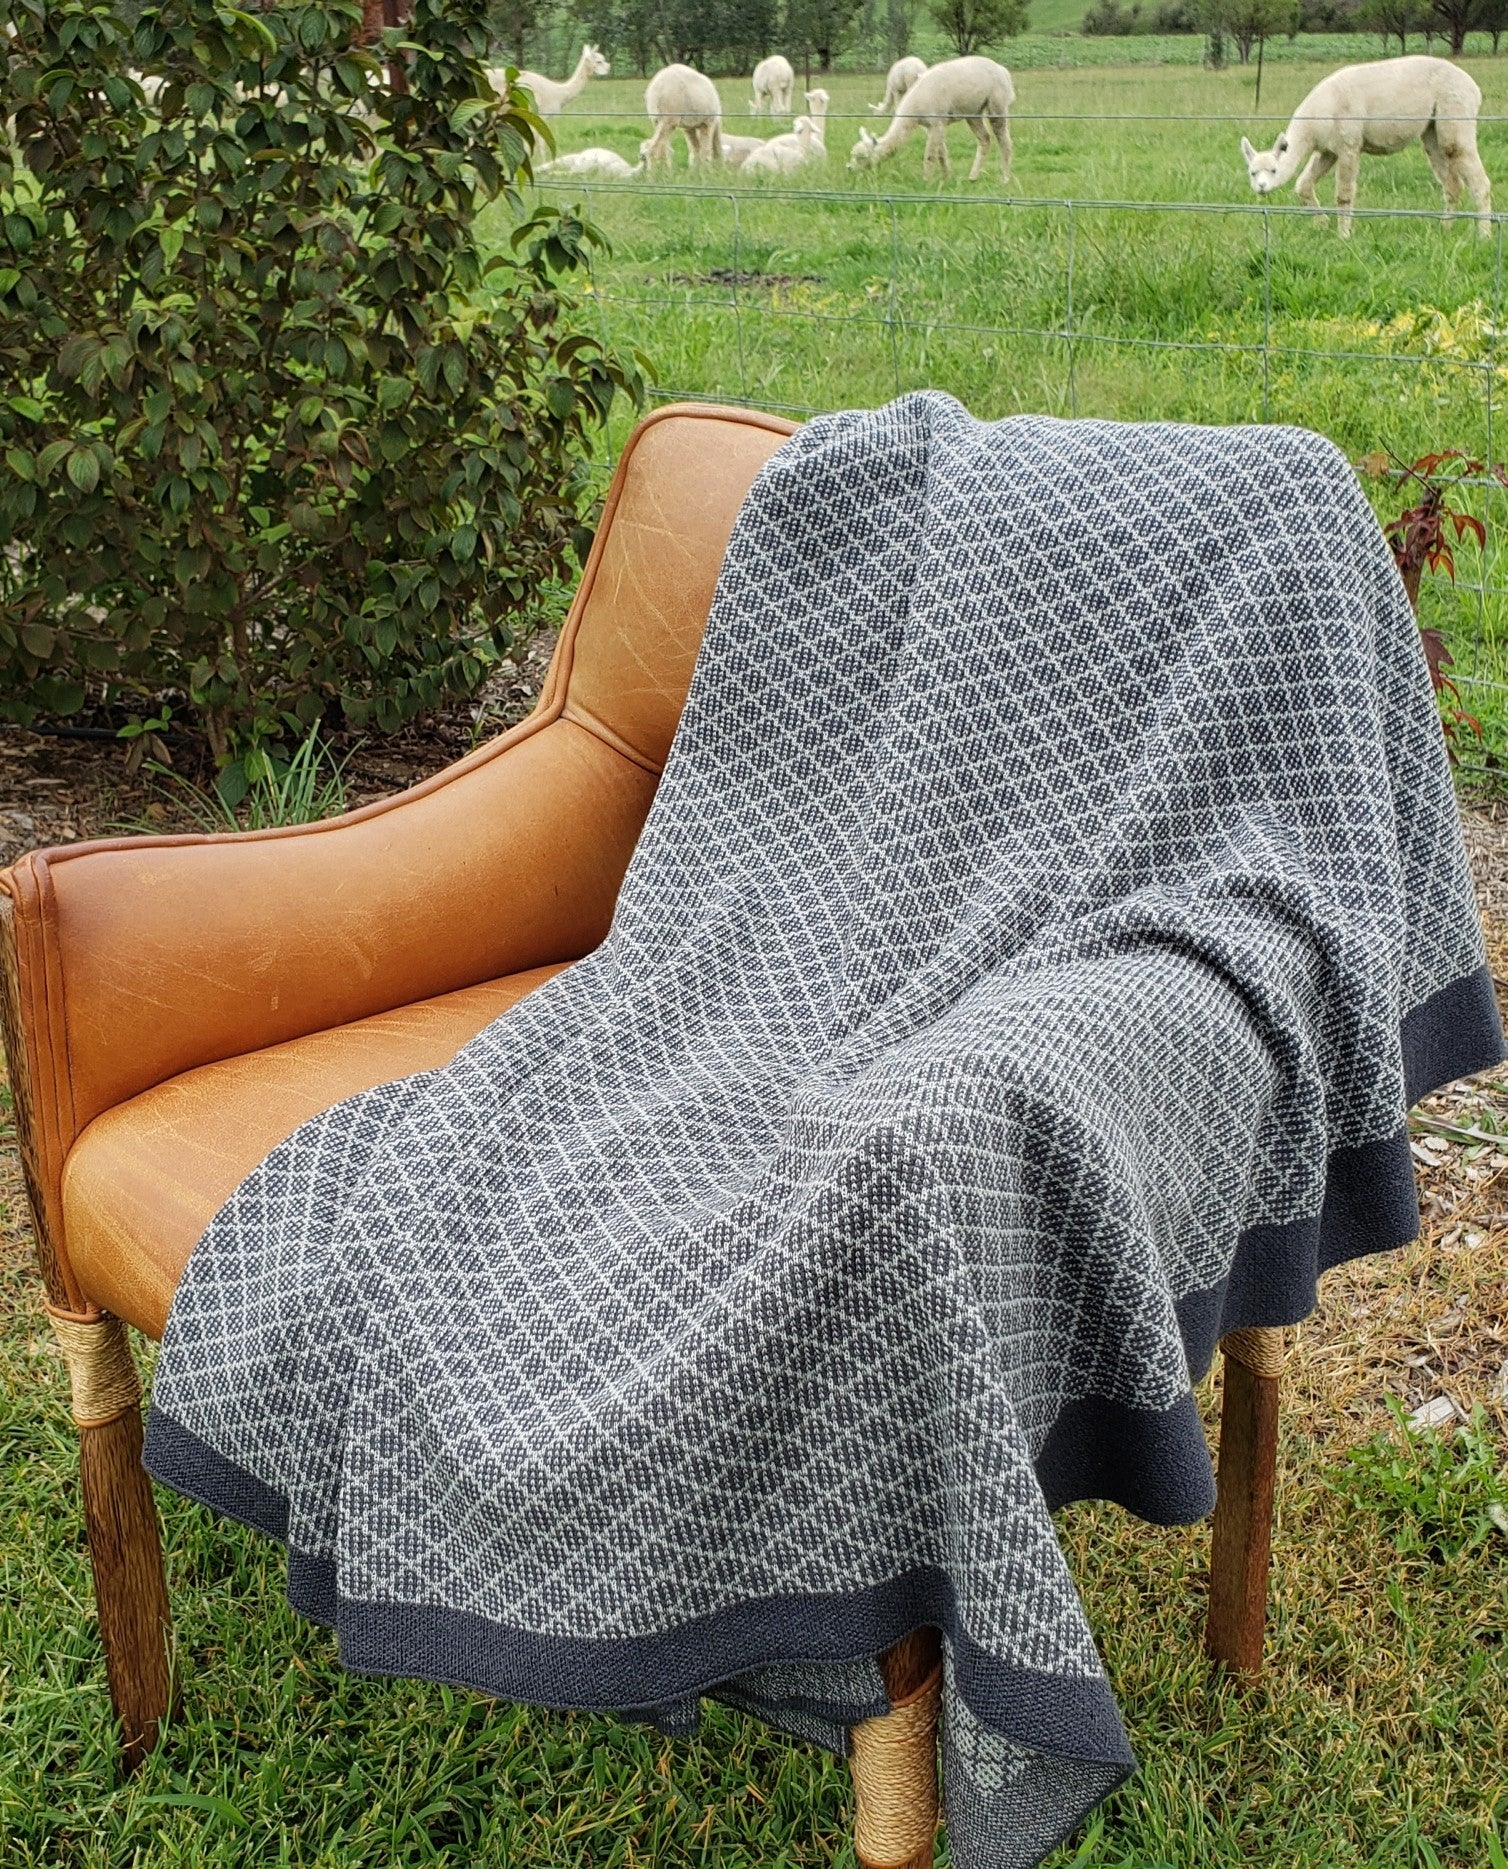 Mosaic pattern pure alpaca wool blanket on a chair in paddock with the alpacas. Stormy grey and natural in color.